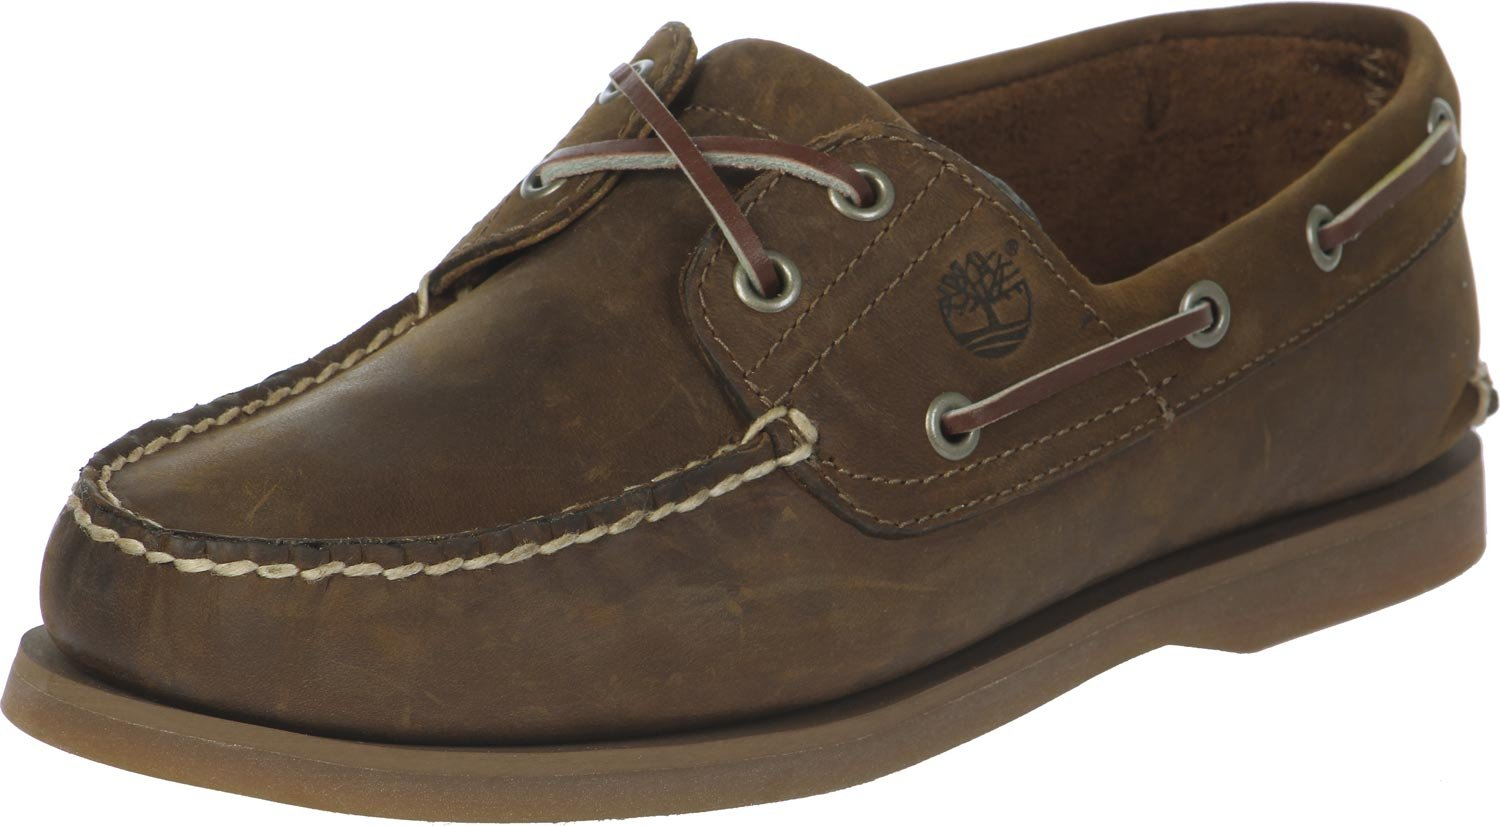 Timberland Classic 2-Eye, Chaussures Bateau Homme 38097